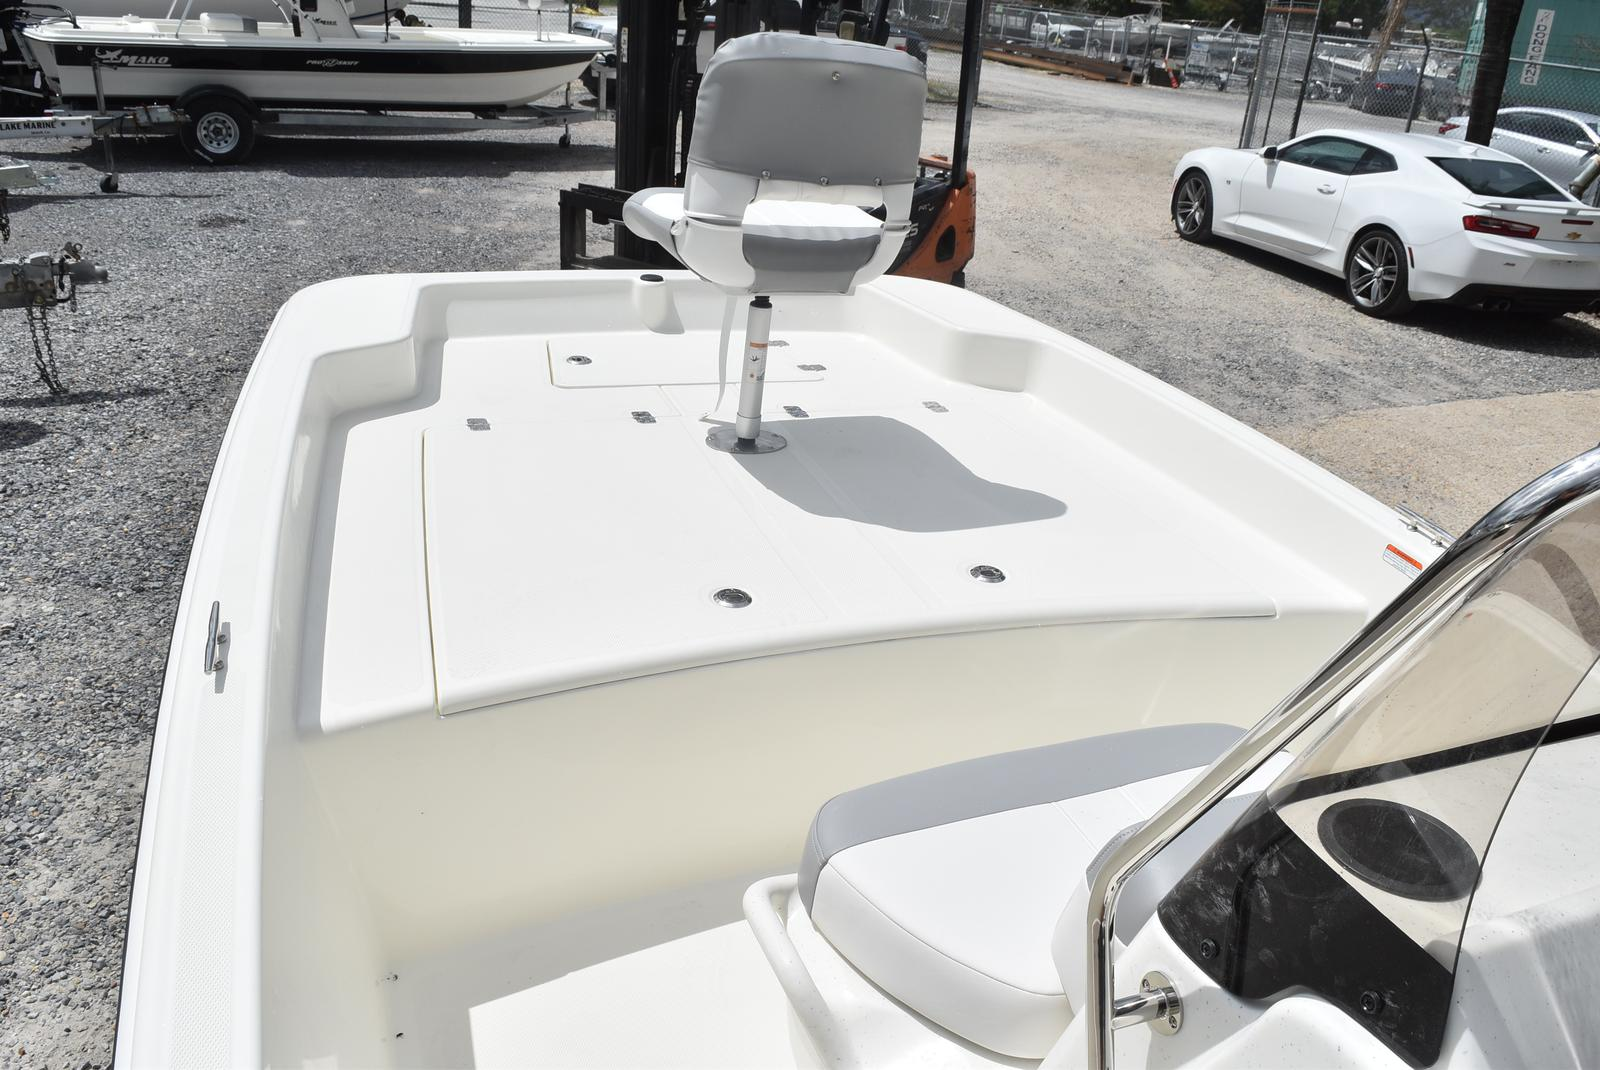 2020 Mako boat for sale, model of the boat is Pro Skiff 17, 75 ELPT & Image # 413 of 702